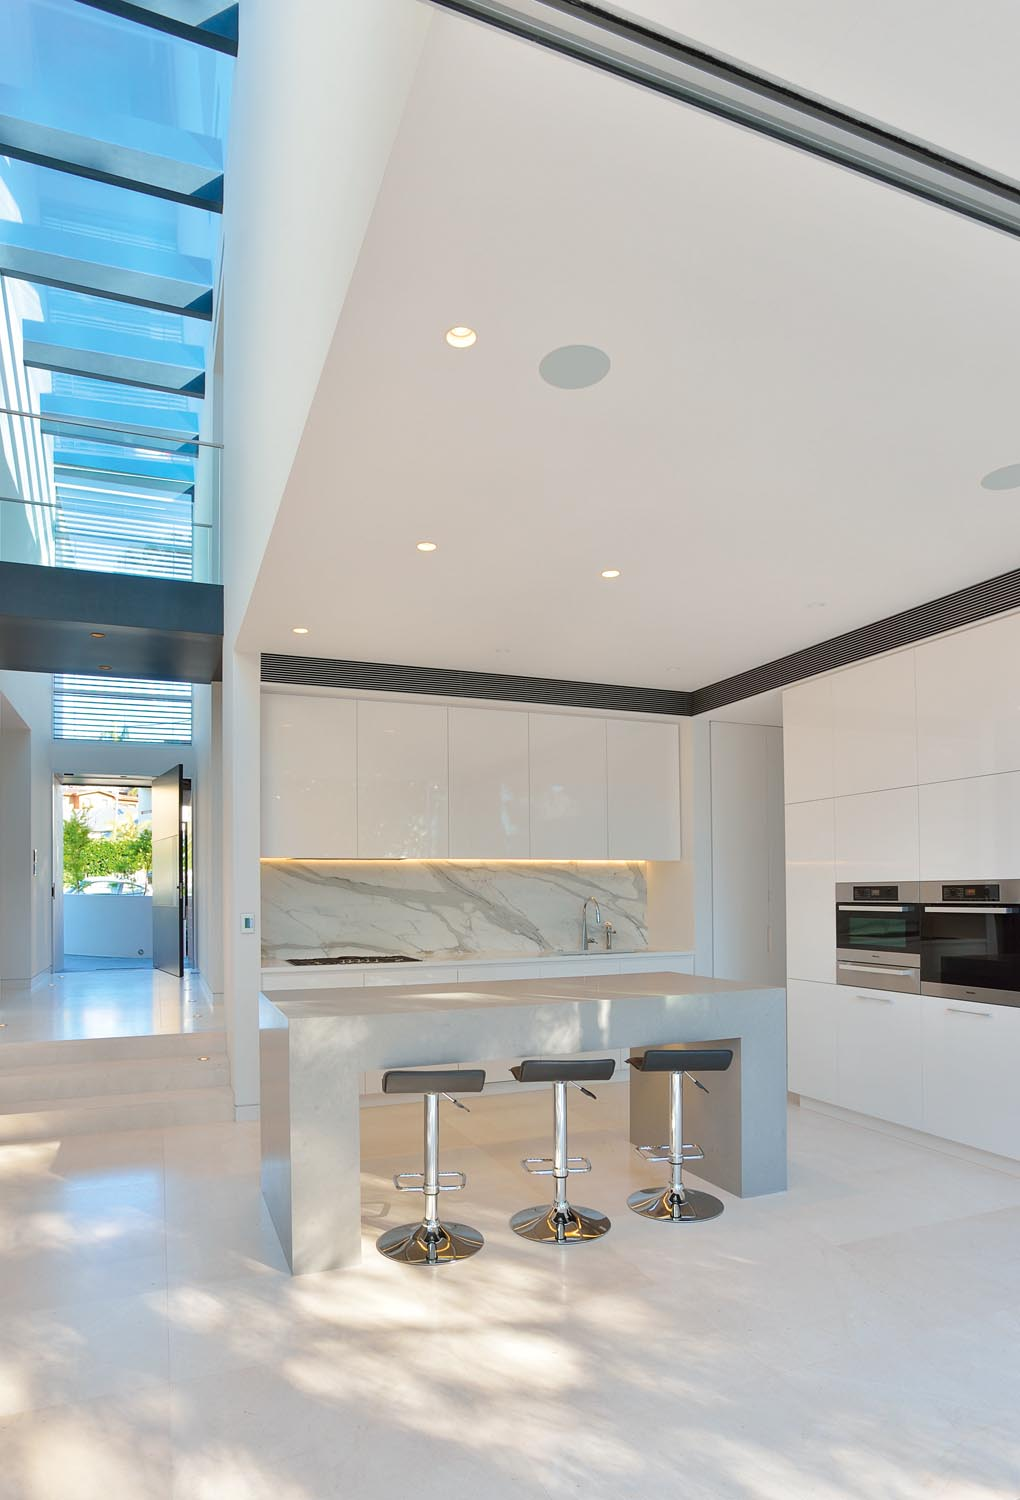 Clean and simple, the kitchen provides room  for cooking, working and entertaining